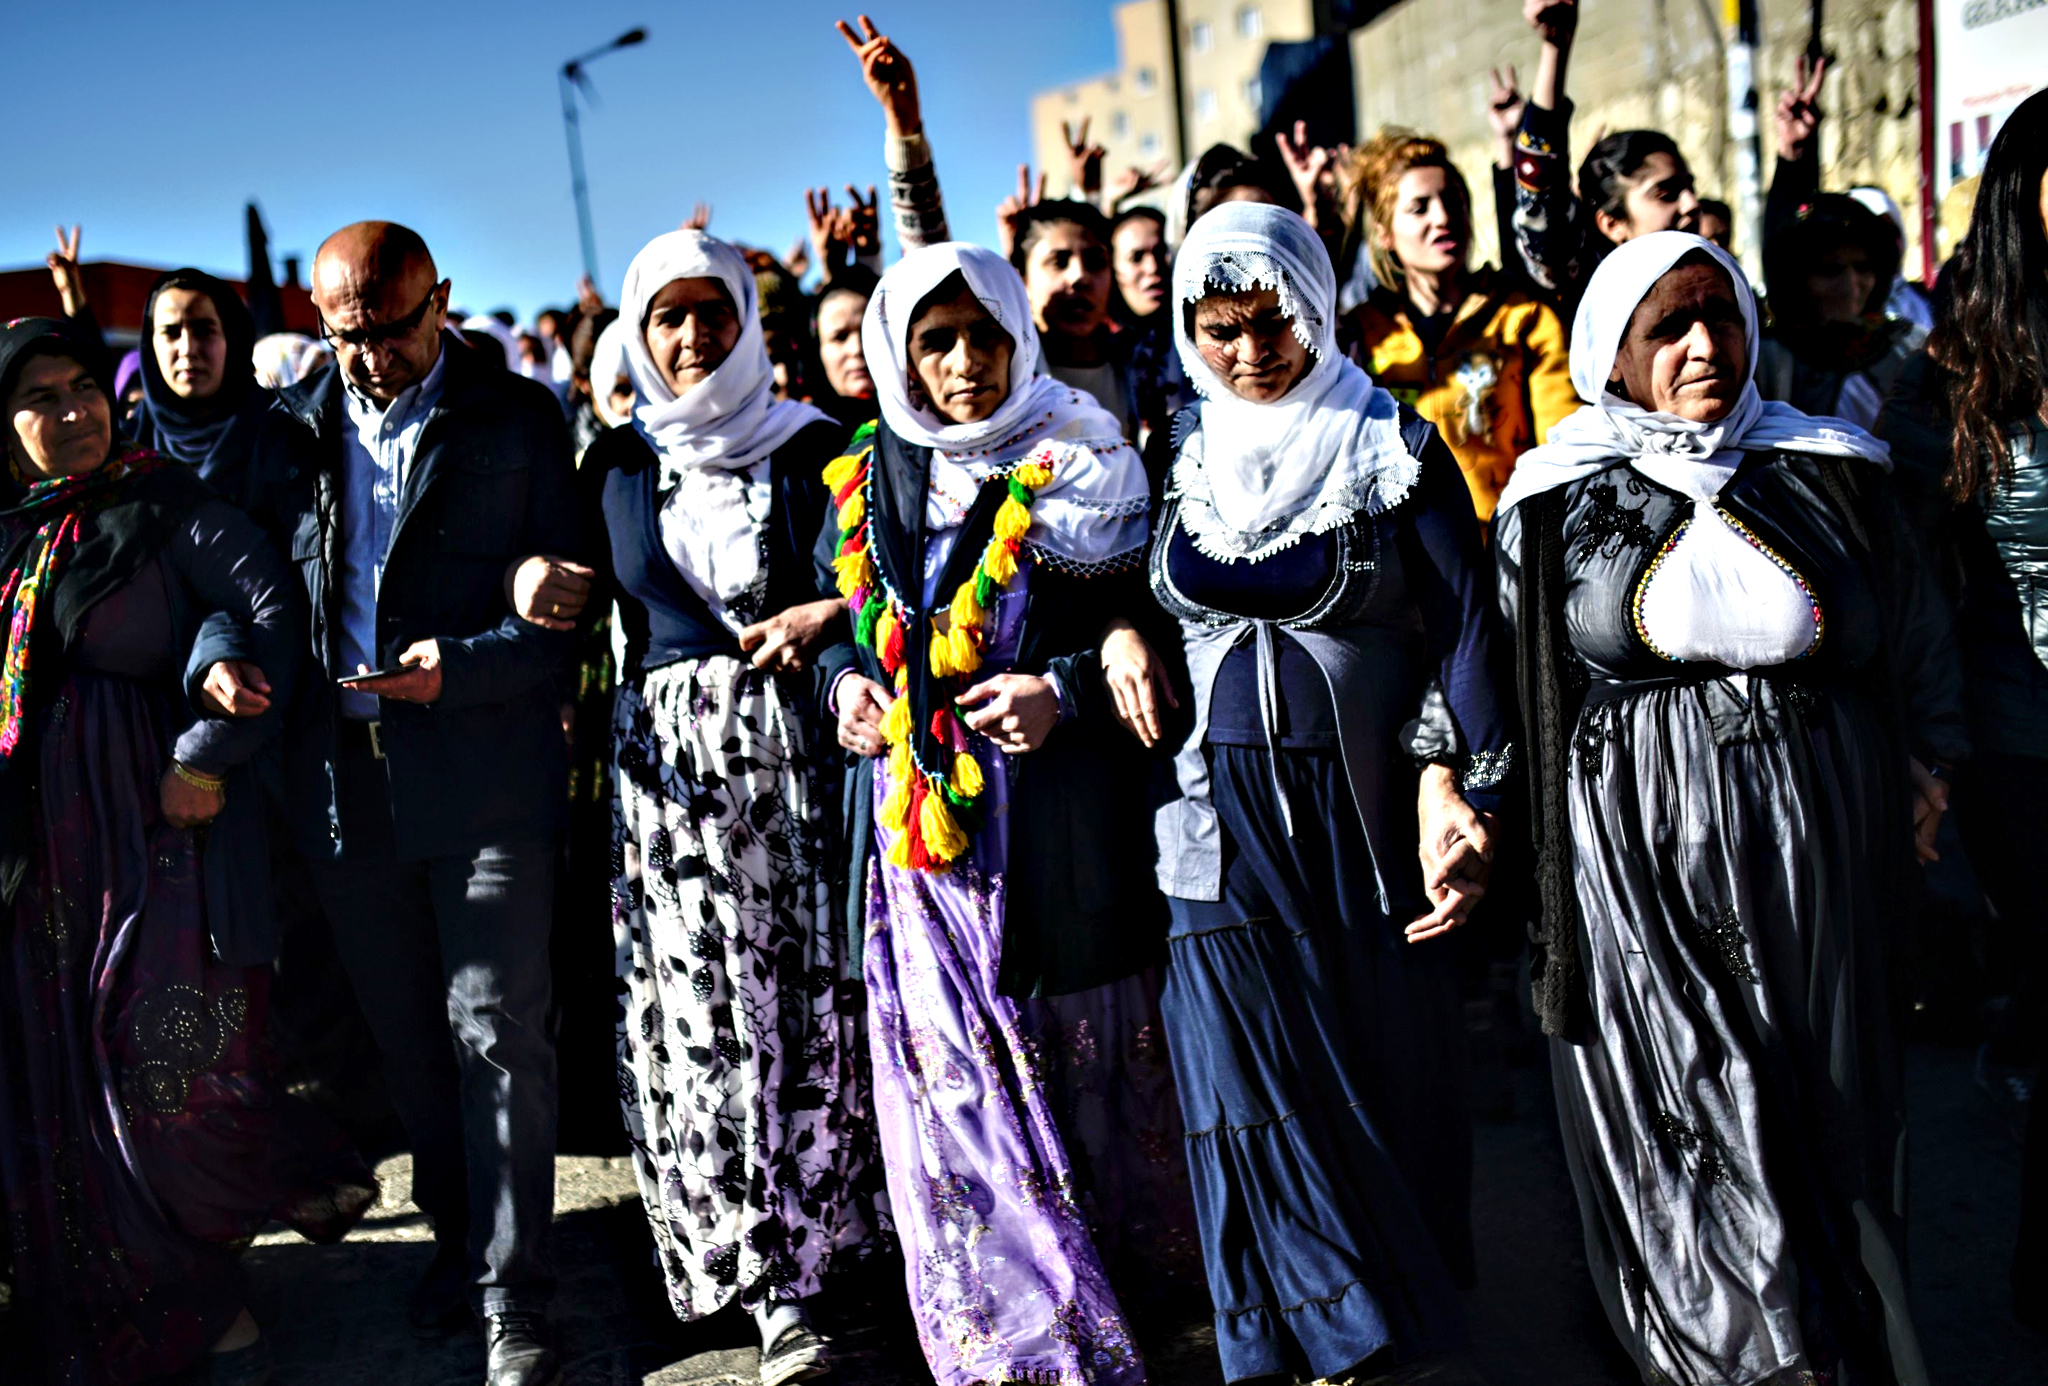 People chant slogans during a protest against security operations against Kurdish rebels in southeastern Turkey cities Cizre and Silopi, in Sirnak on December 22, 2015